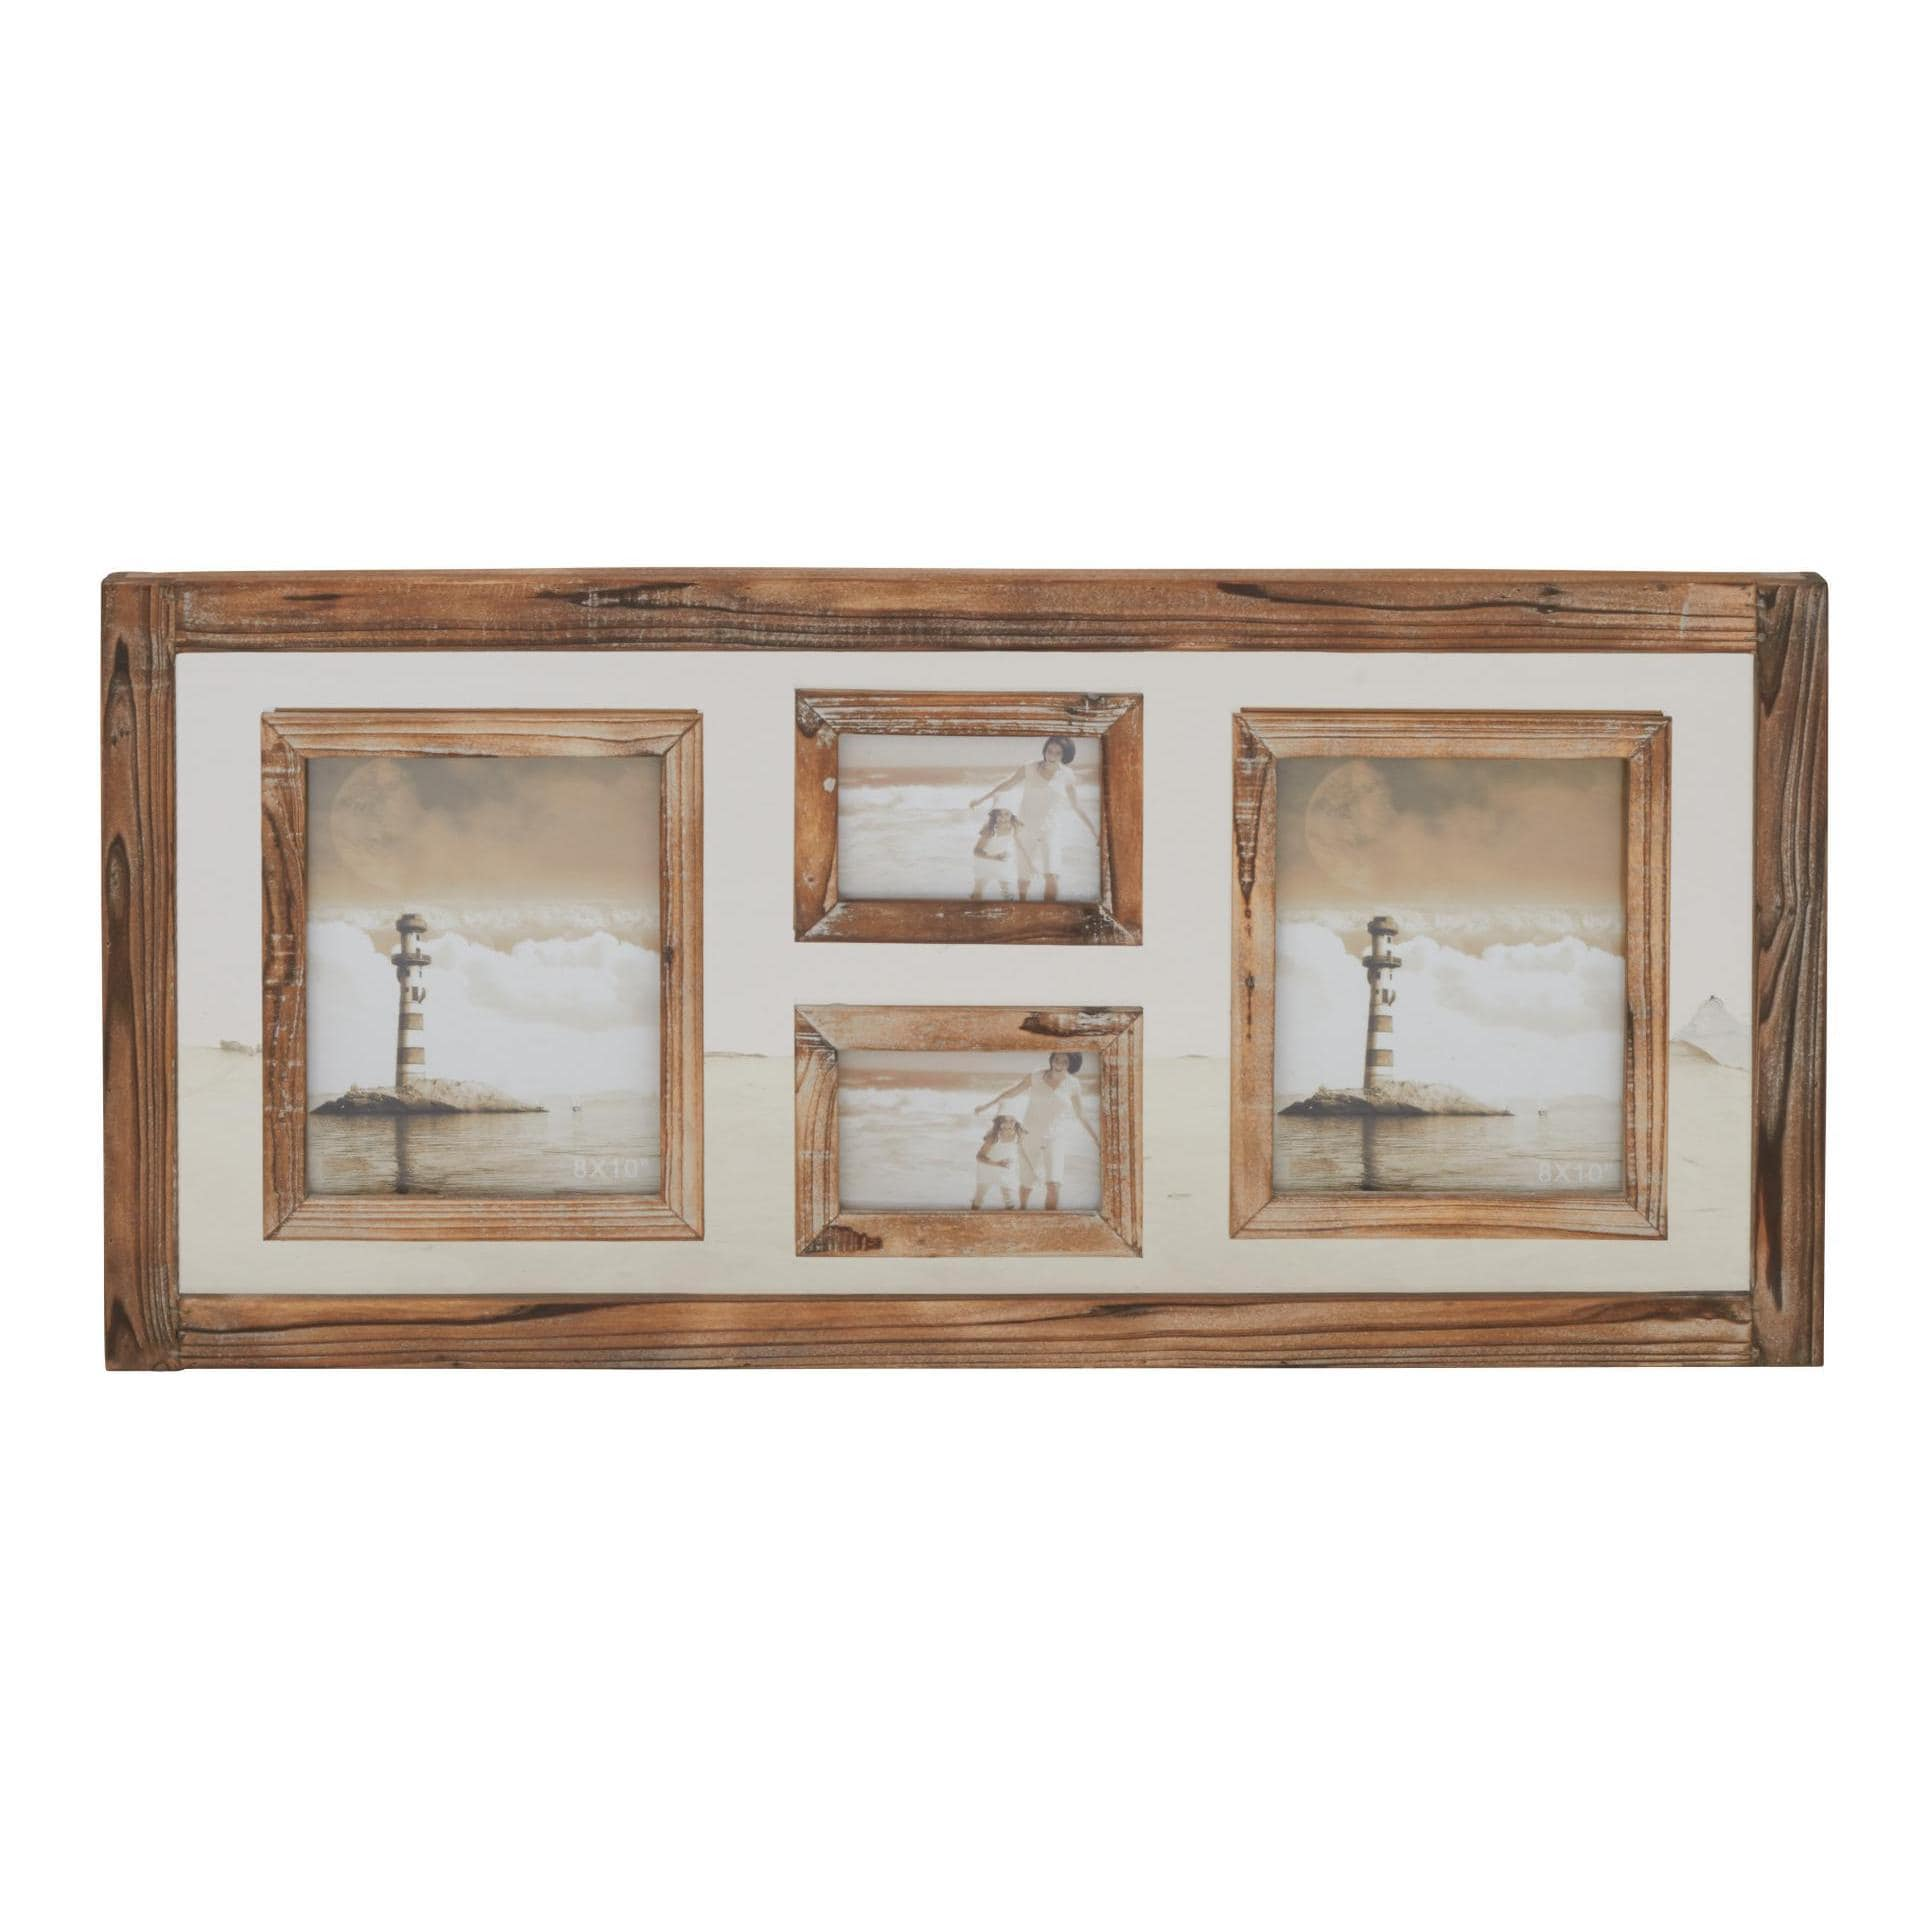 Size 27x39 Wall Frame Decorative Accessories | Find Great Home Decor ...